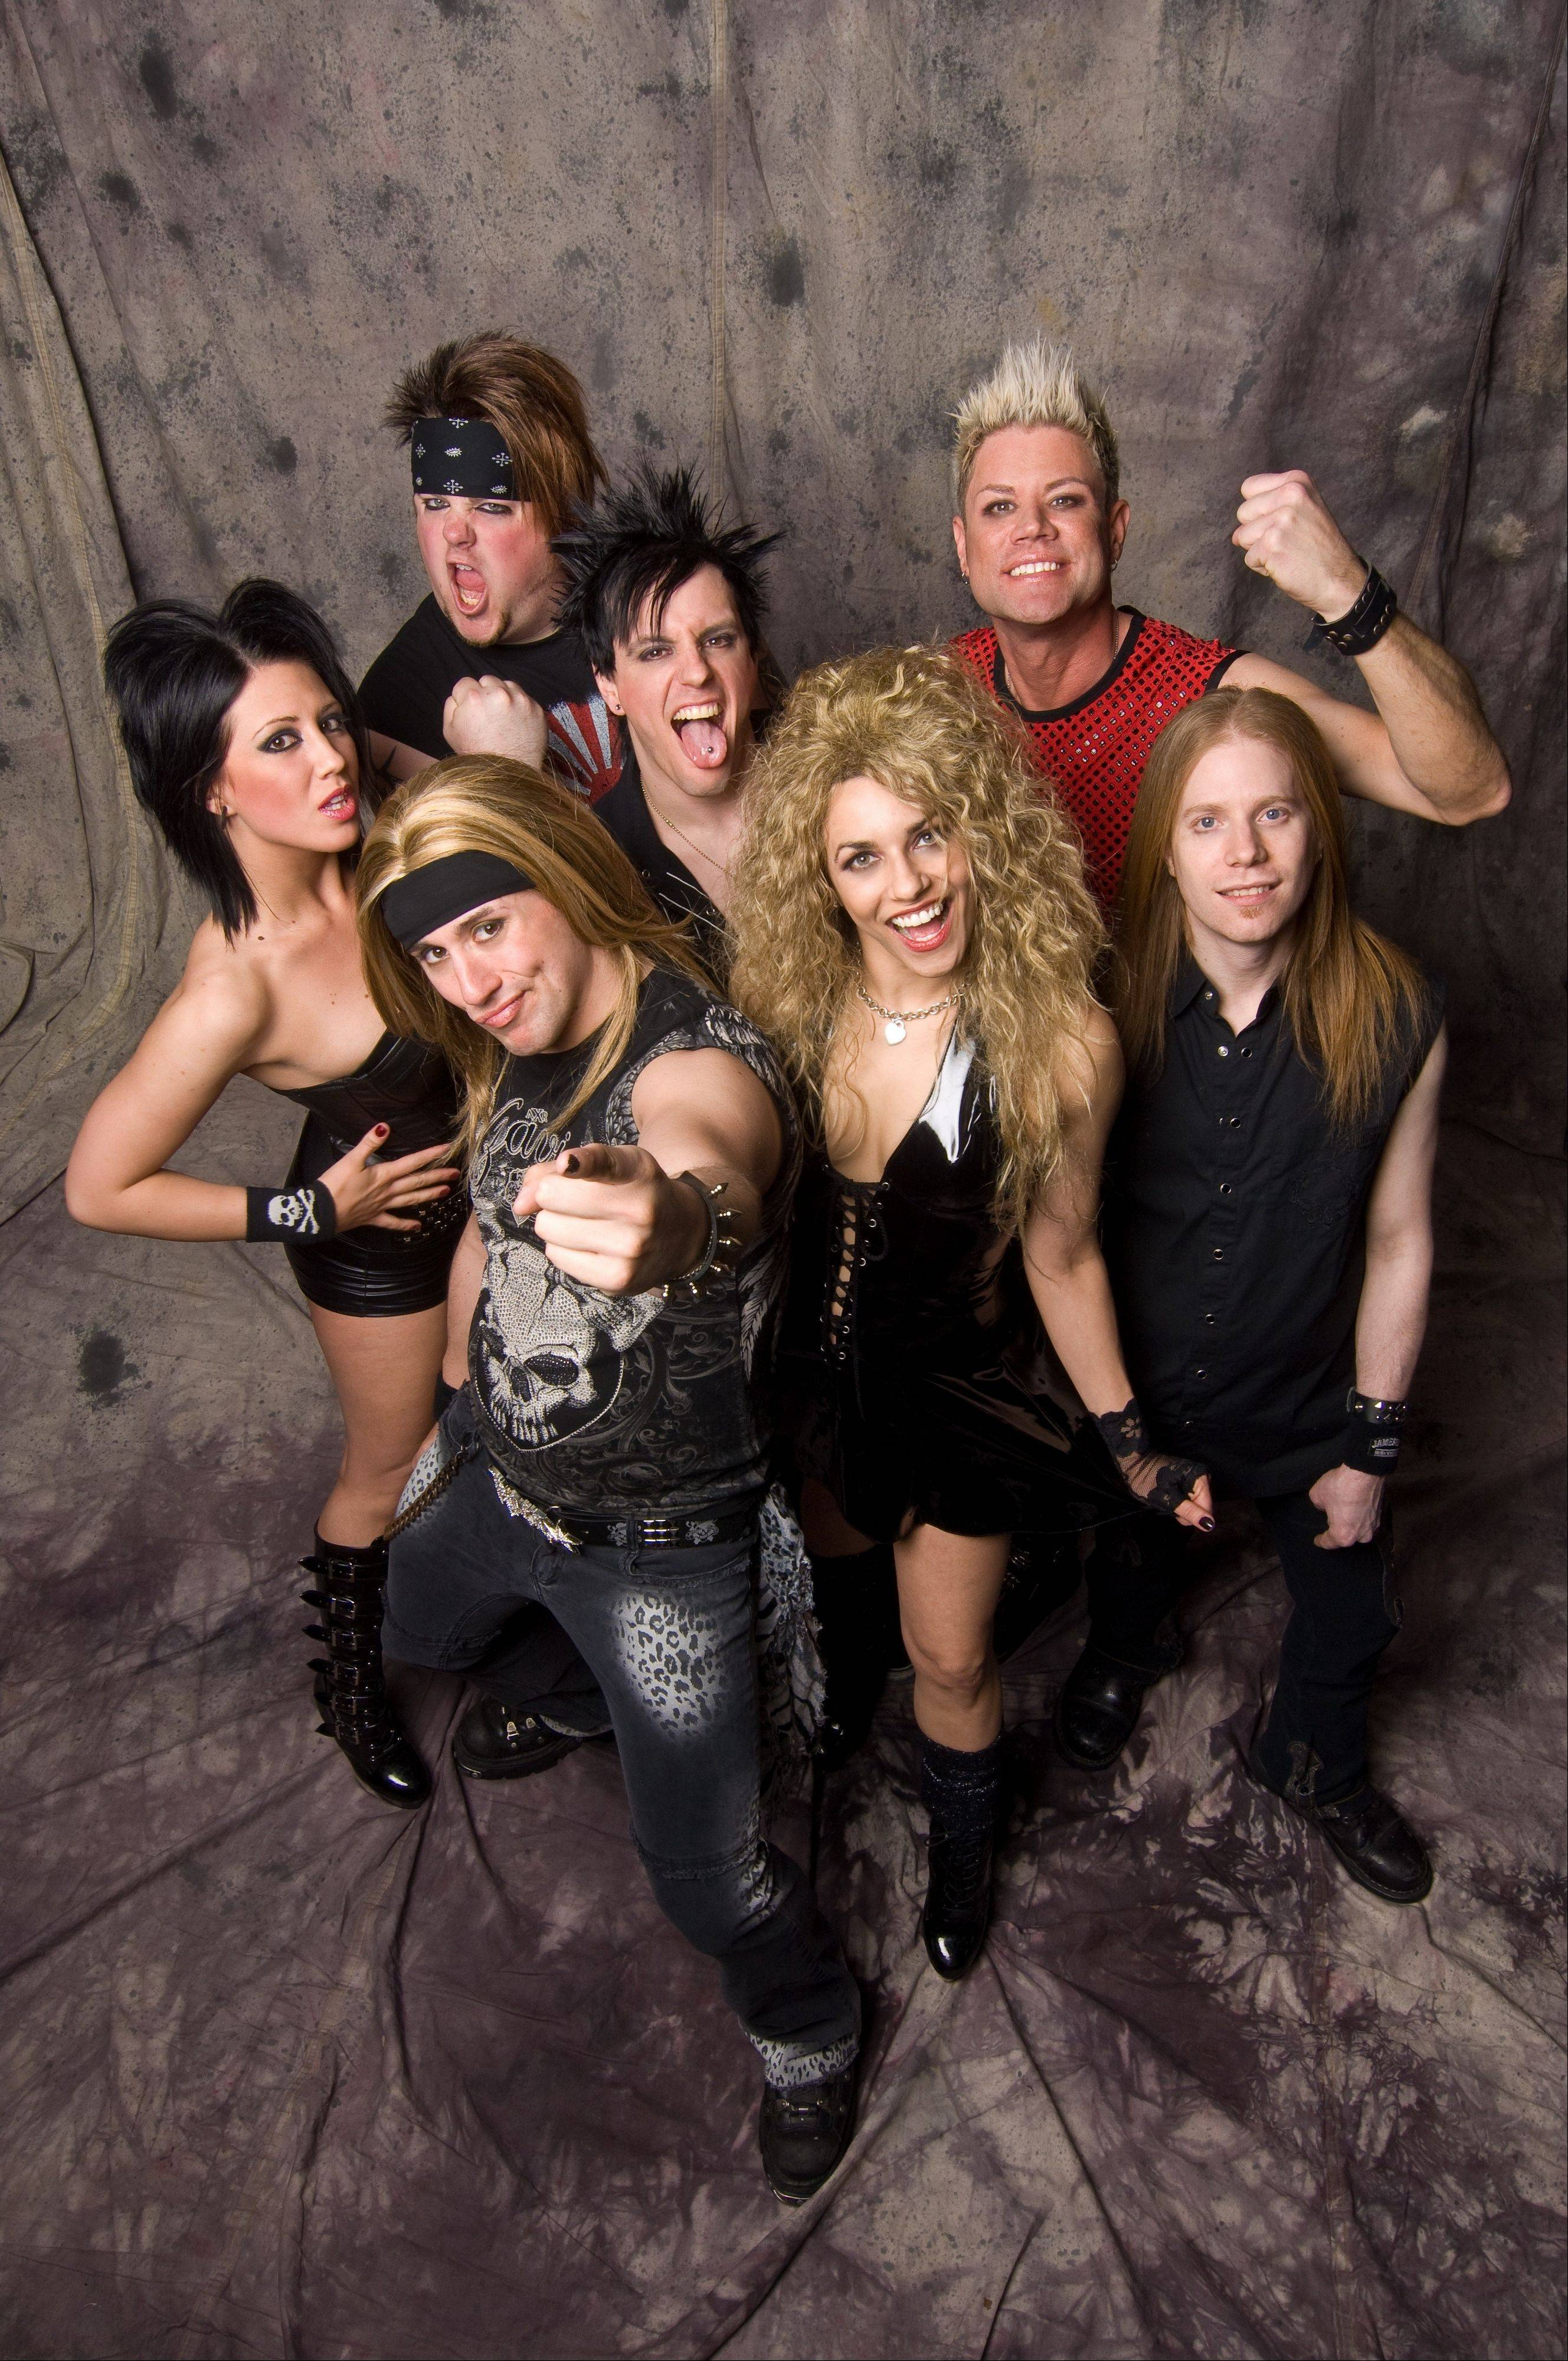 Hairbangers Ball performs at Durty Nellie's in Palatine on Saturday, Dec. 28.